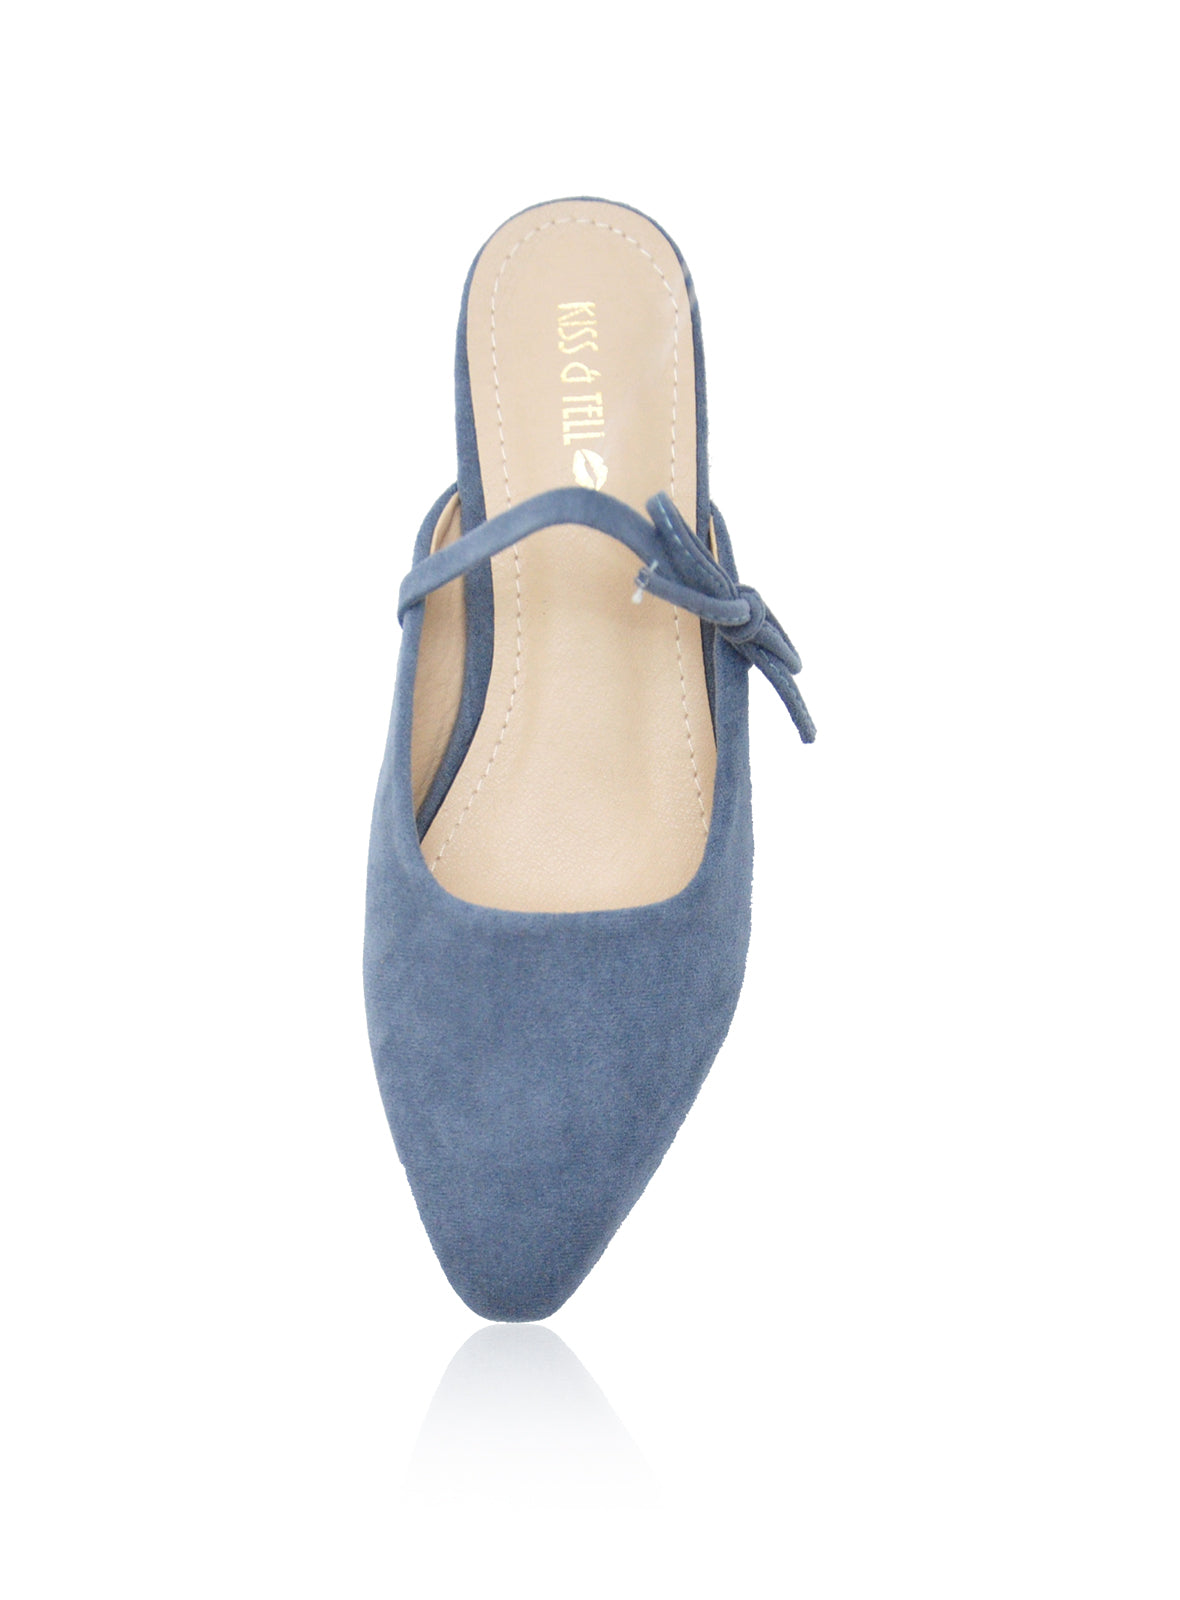 Caroline Mules in Blue